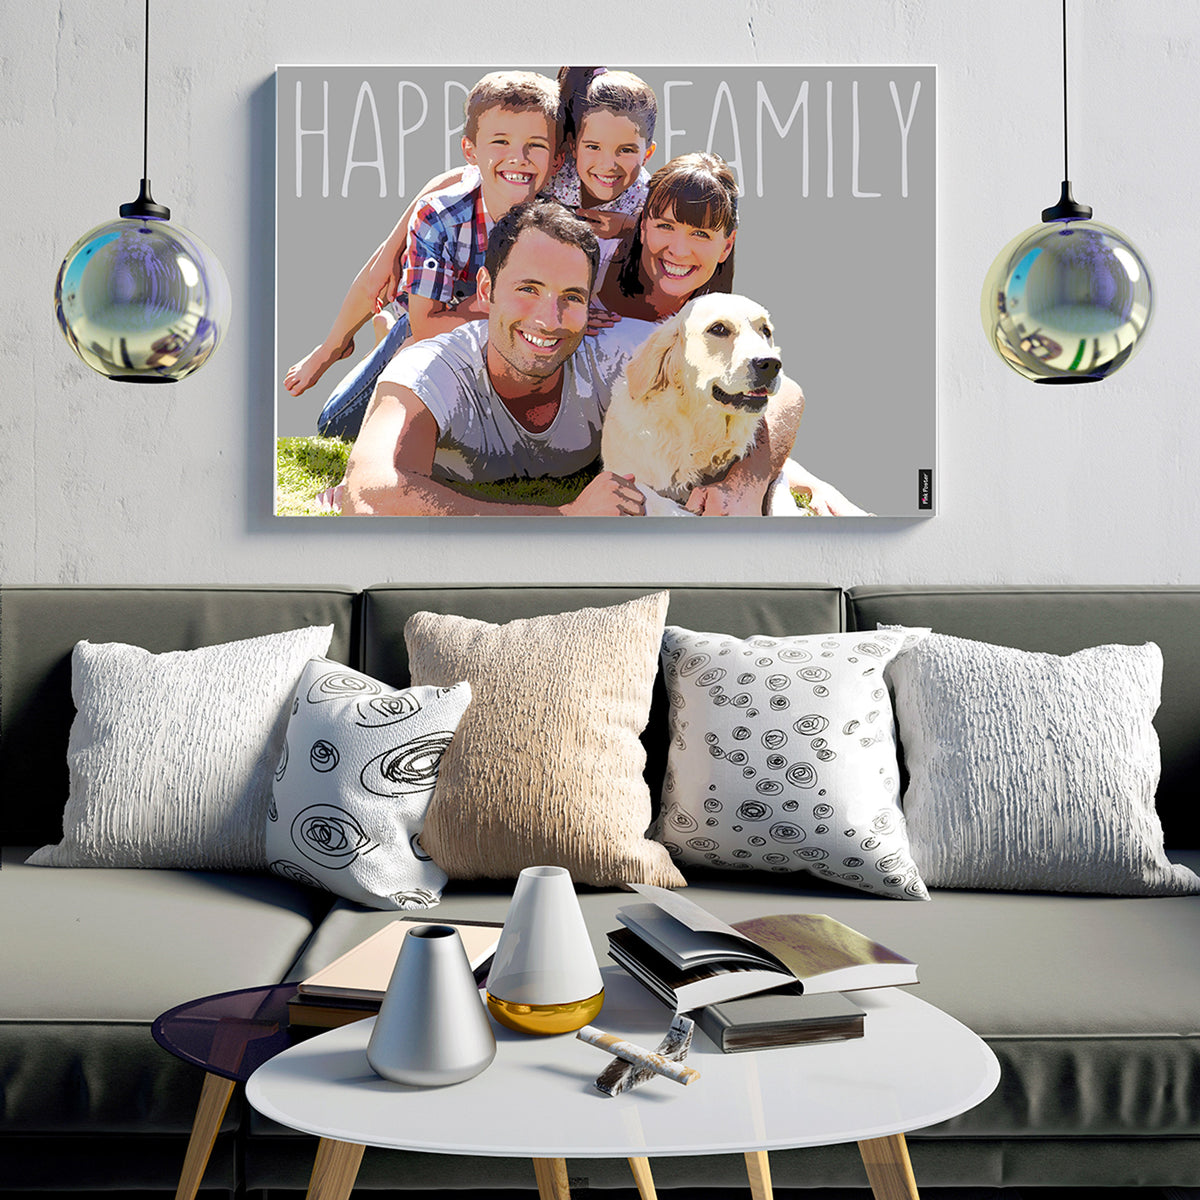 Pop art of happy family on canvas displayed in a nice living room